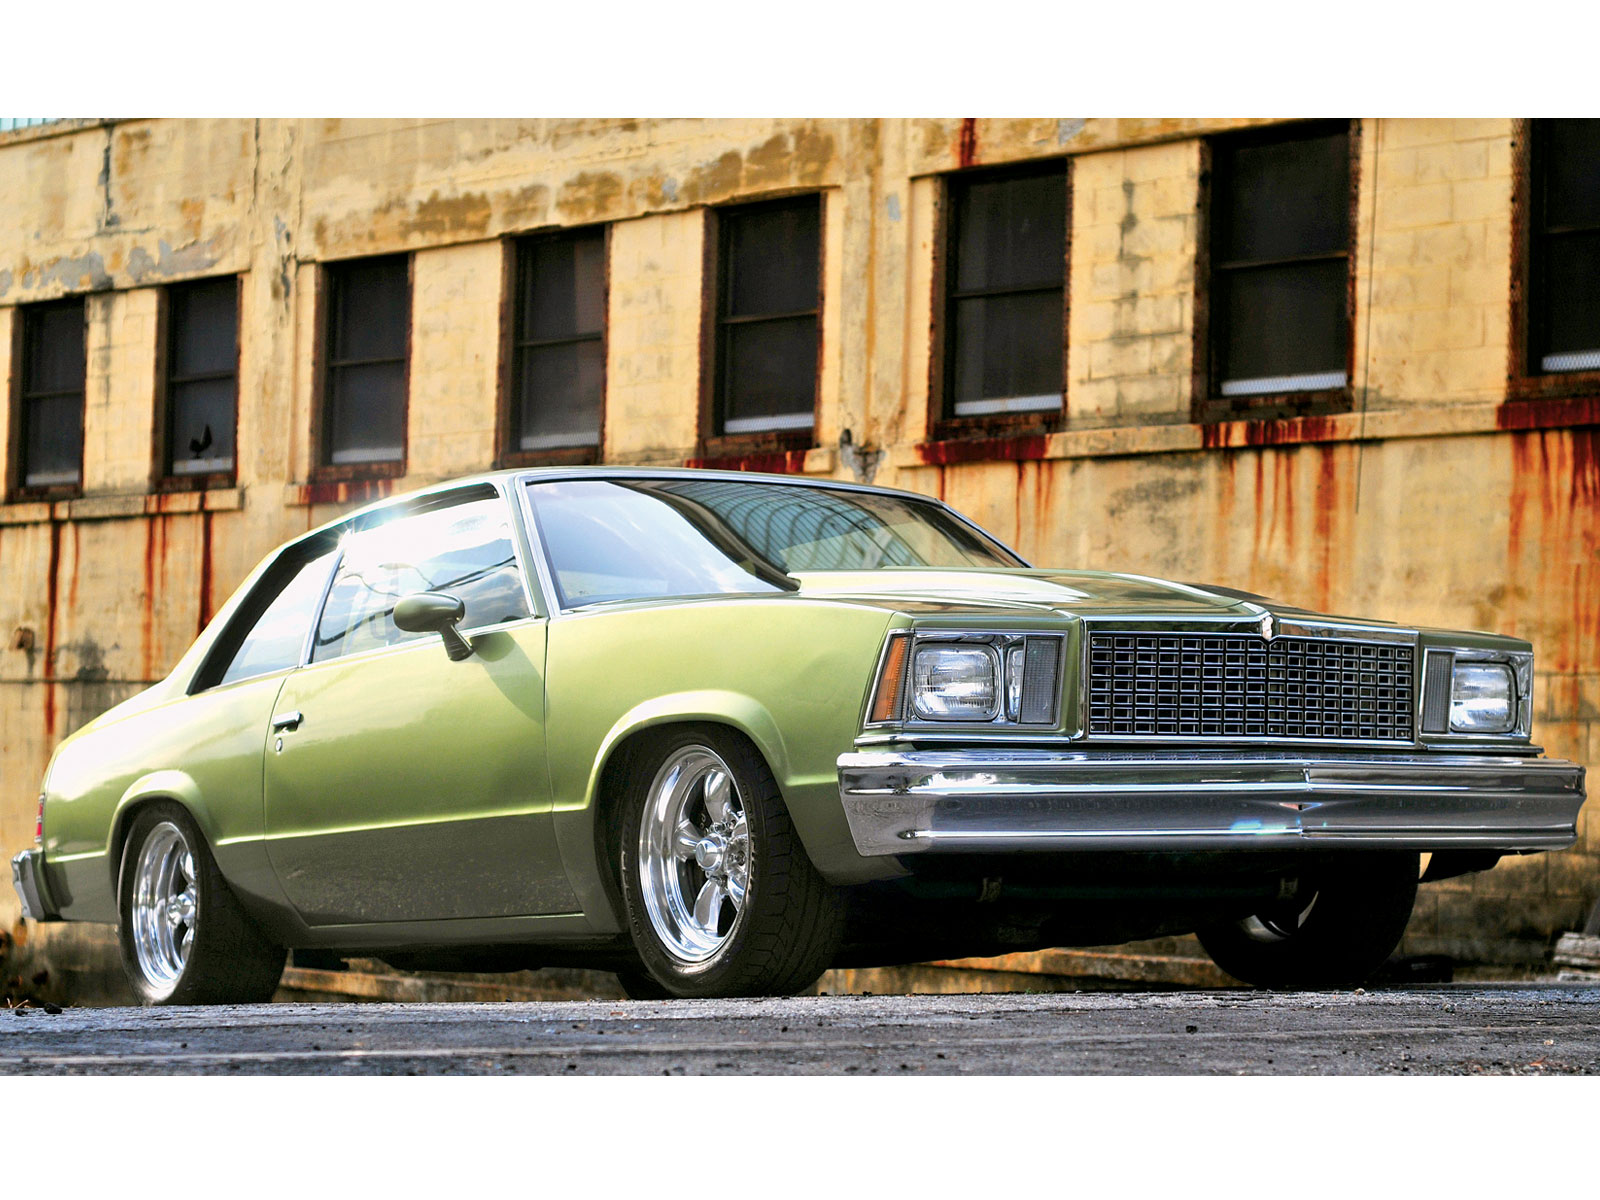 chevrolet malibu hot rod - photo #5